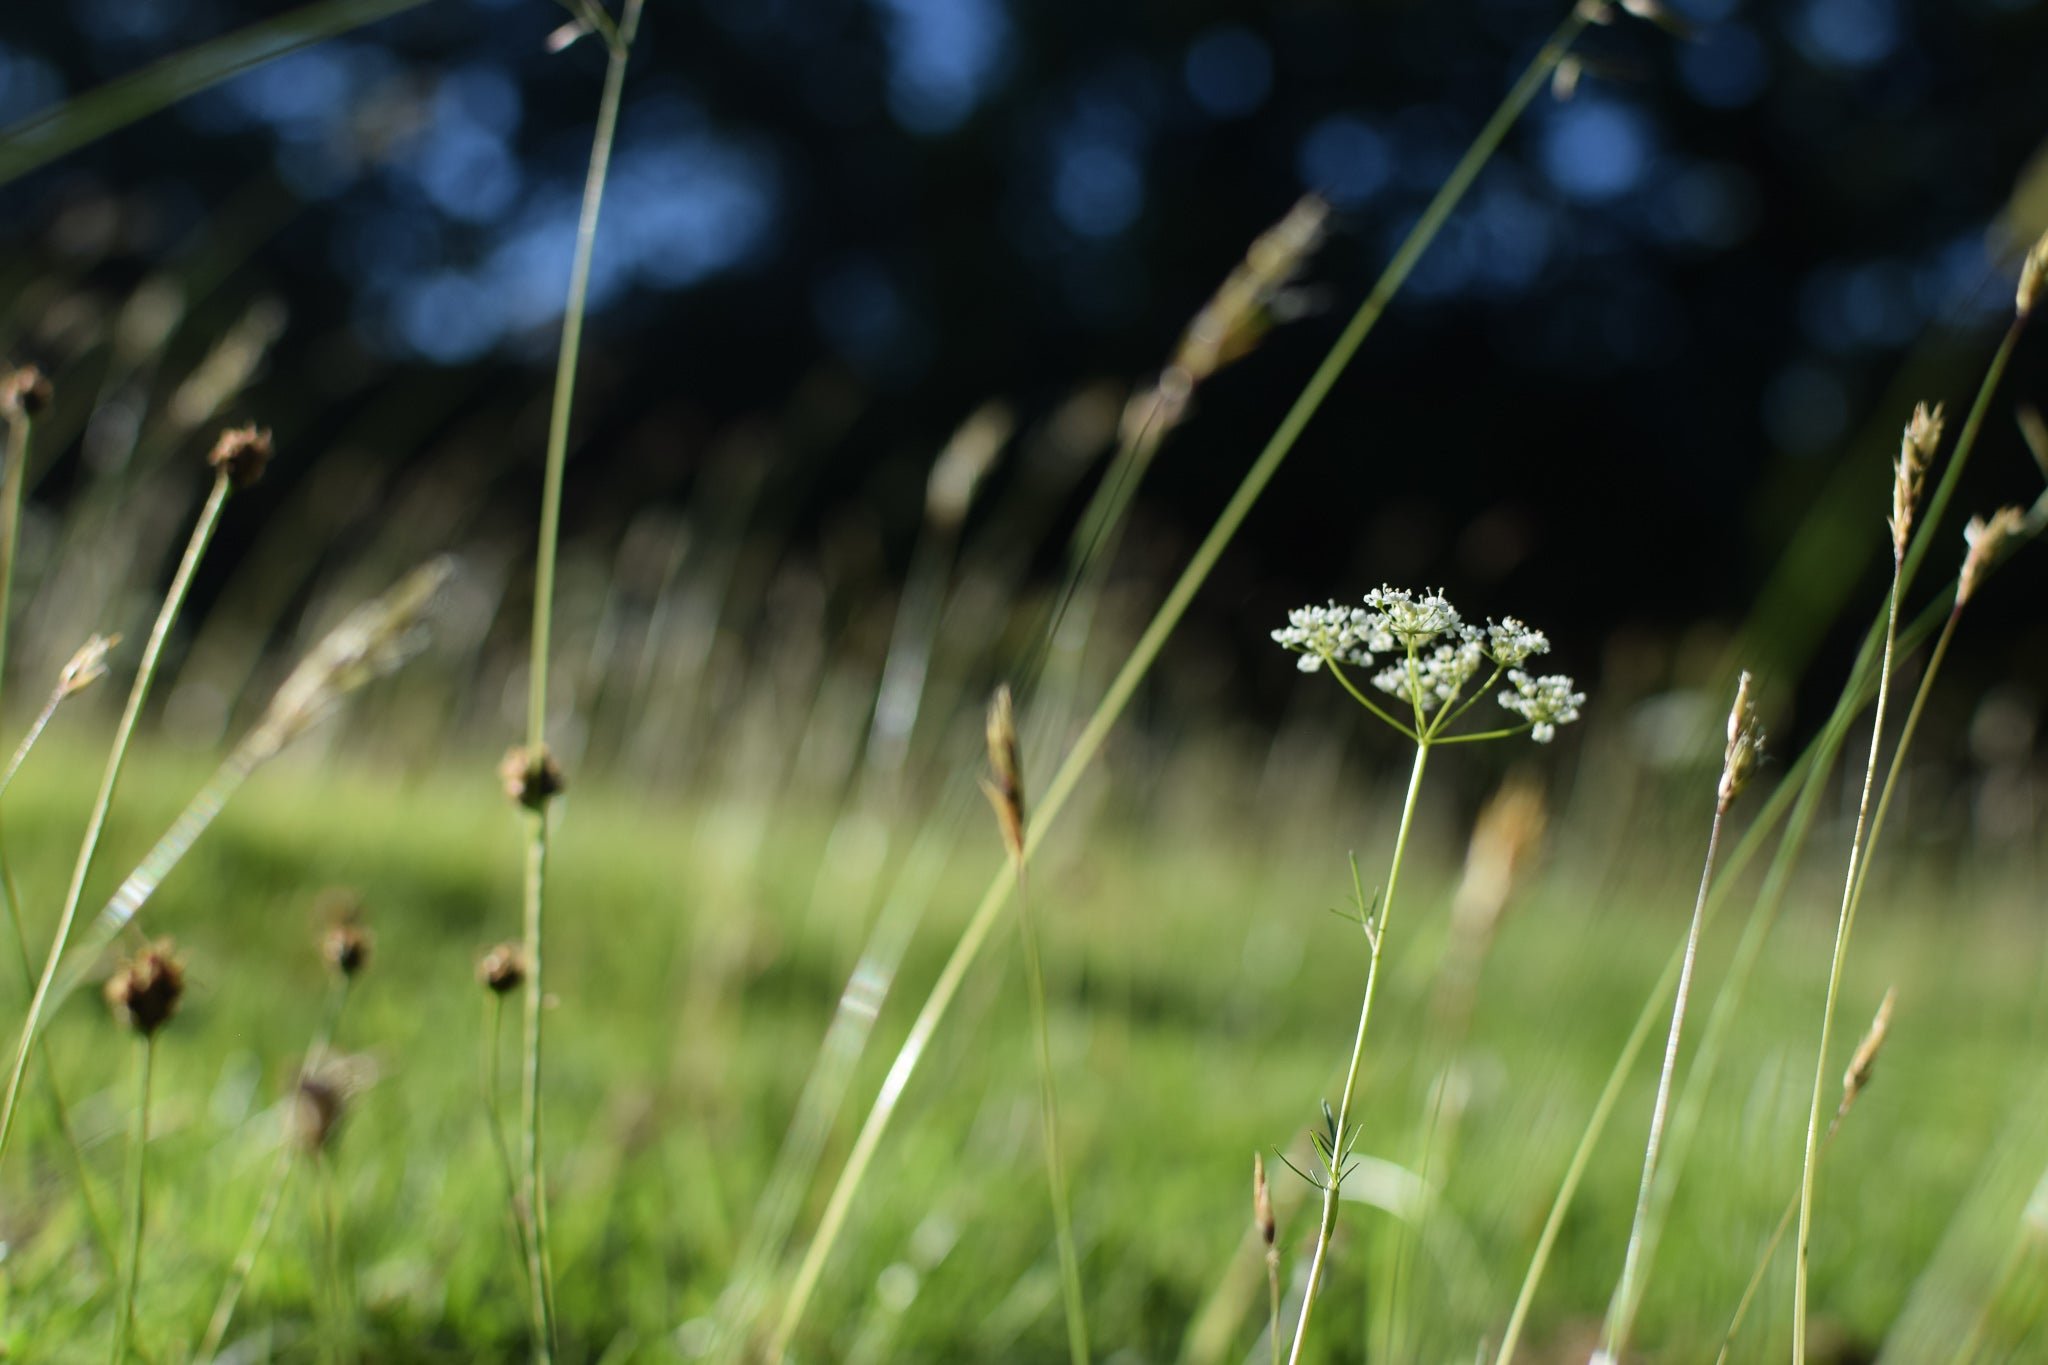 grasses and pignuts dancing in the breeze